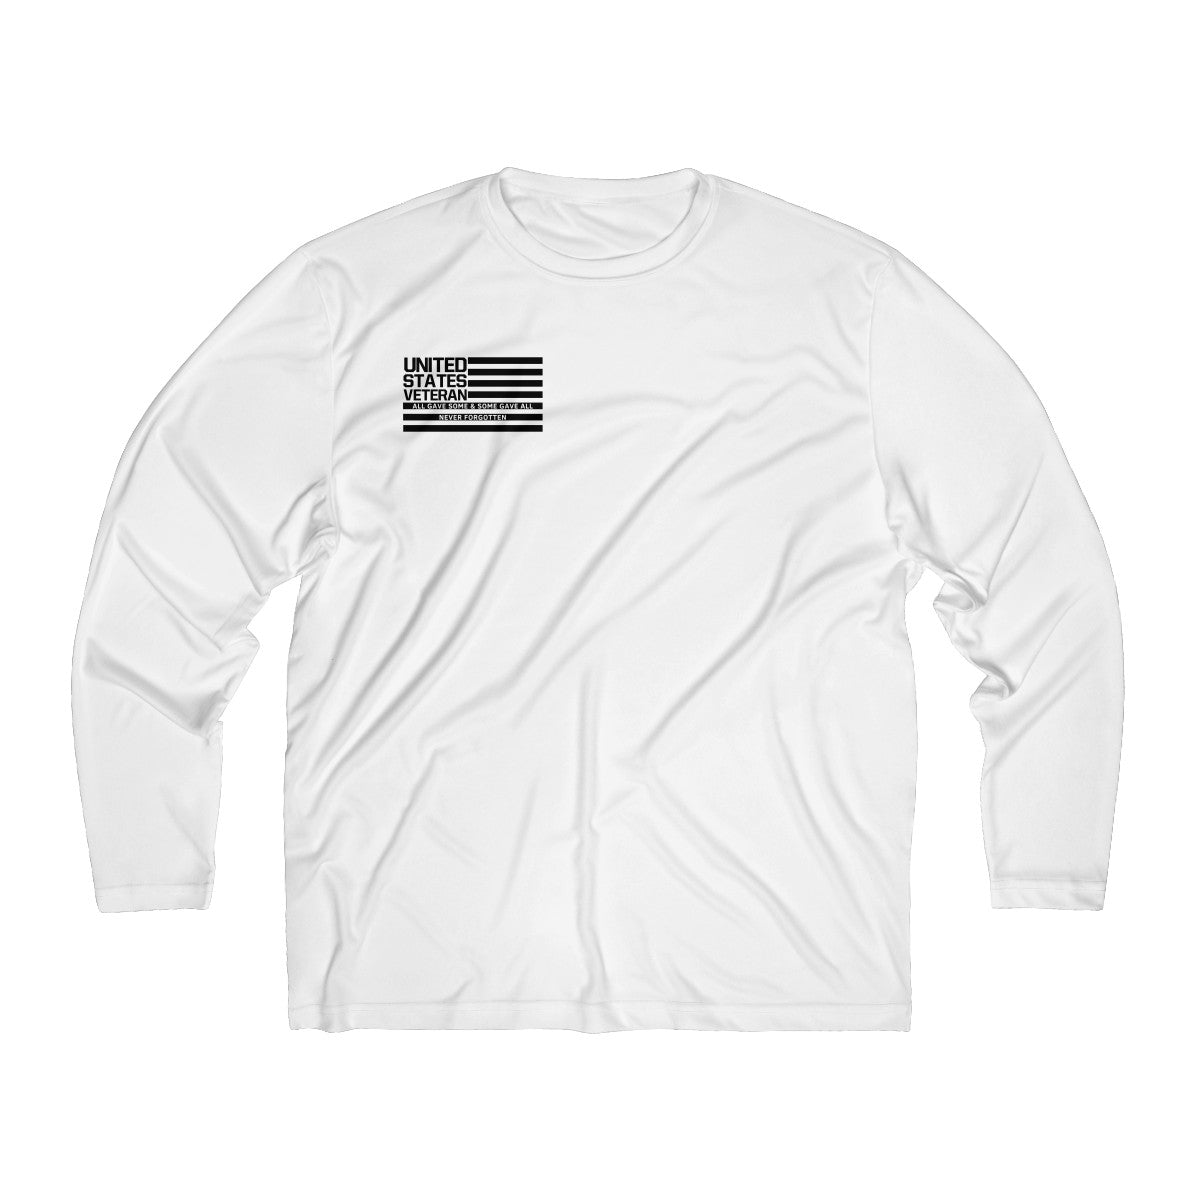 USA Veteran Performance Tee